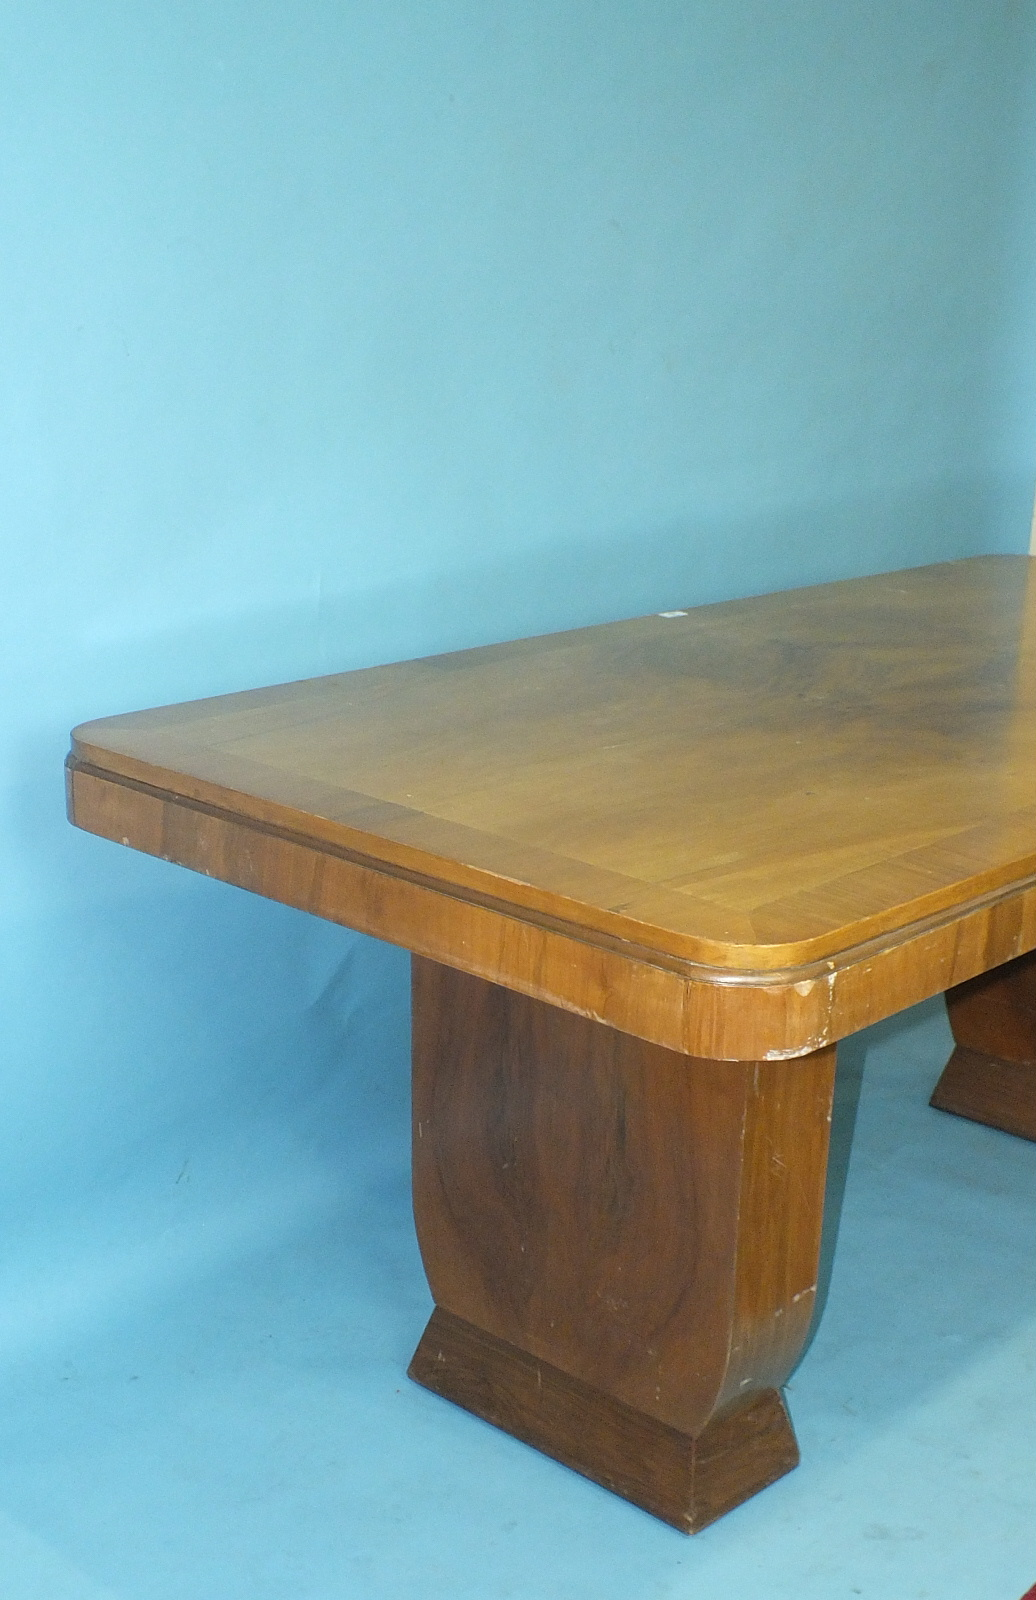 Lot 18 - A 1930's walnut-veneered dining table, 185 x 90cm and five chairs of rounded tub shape.